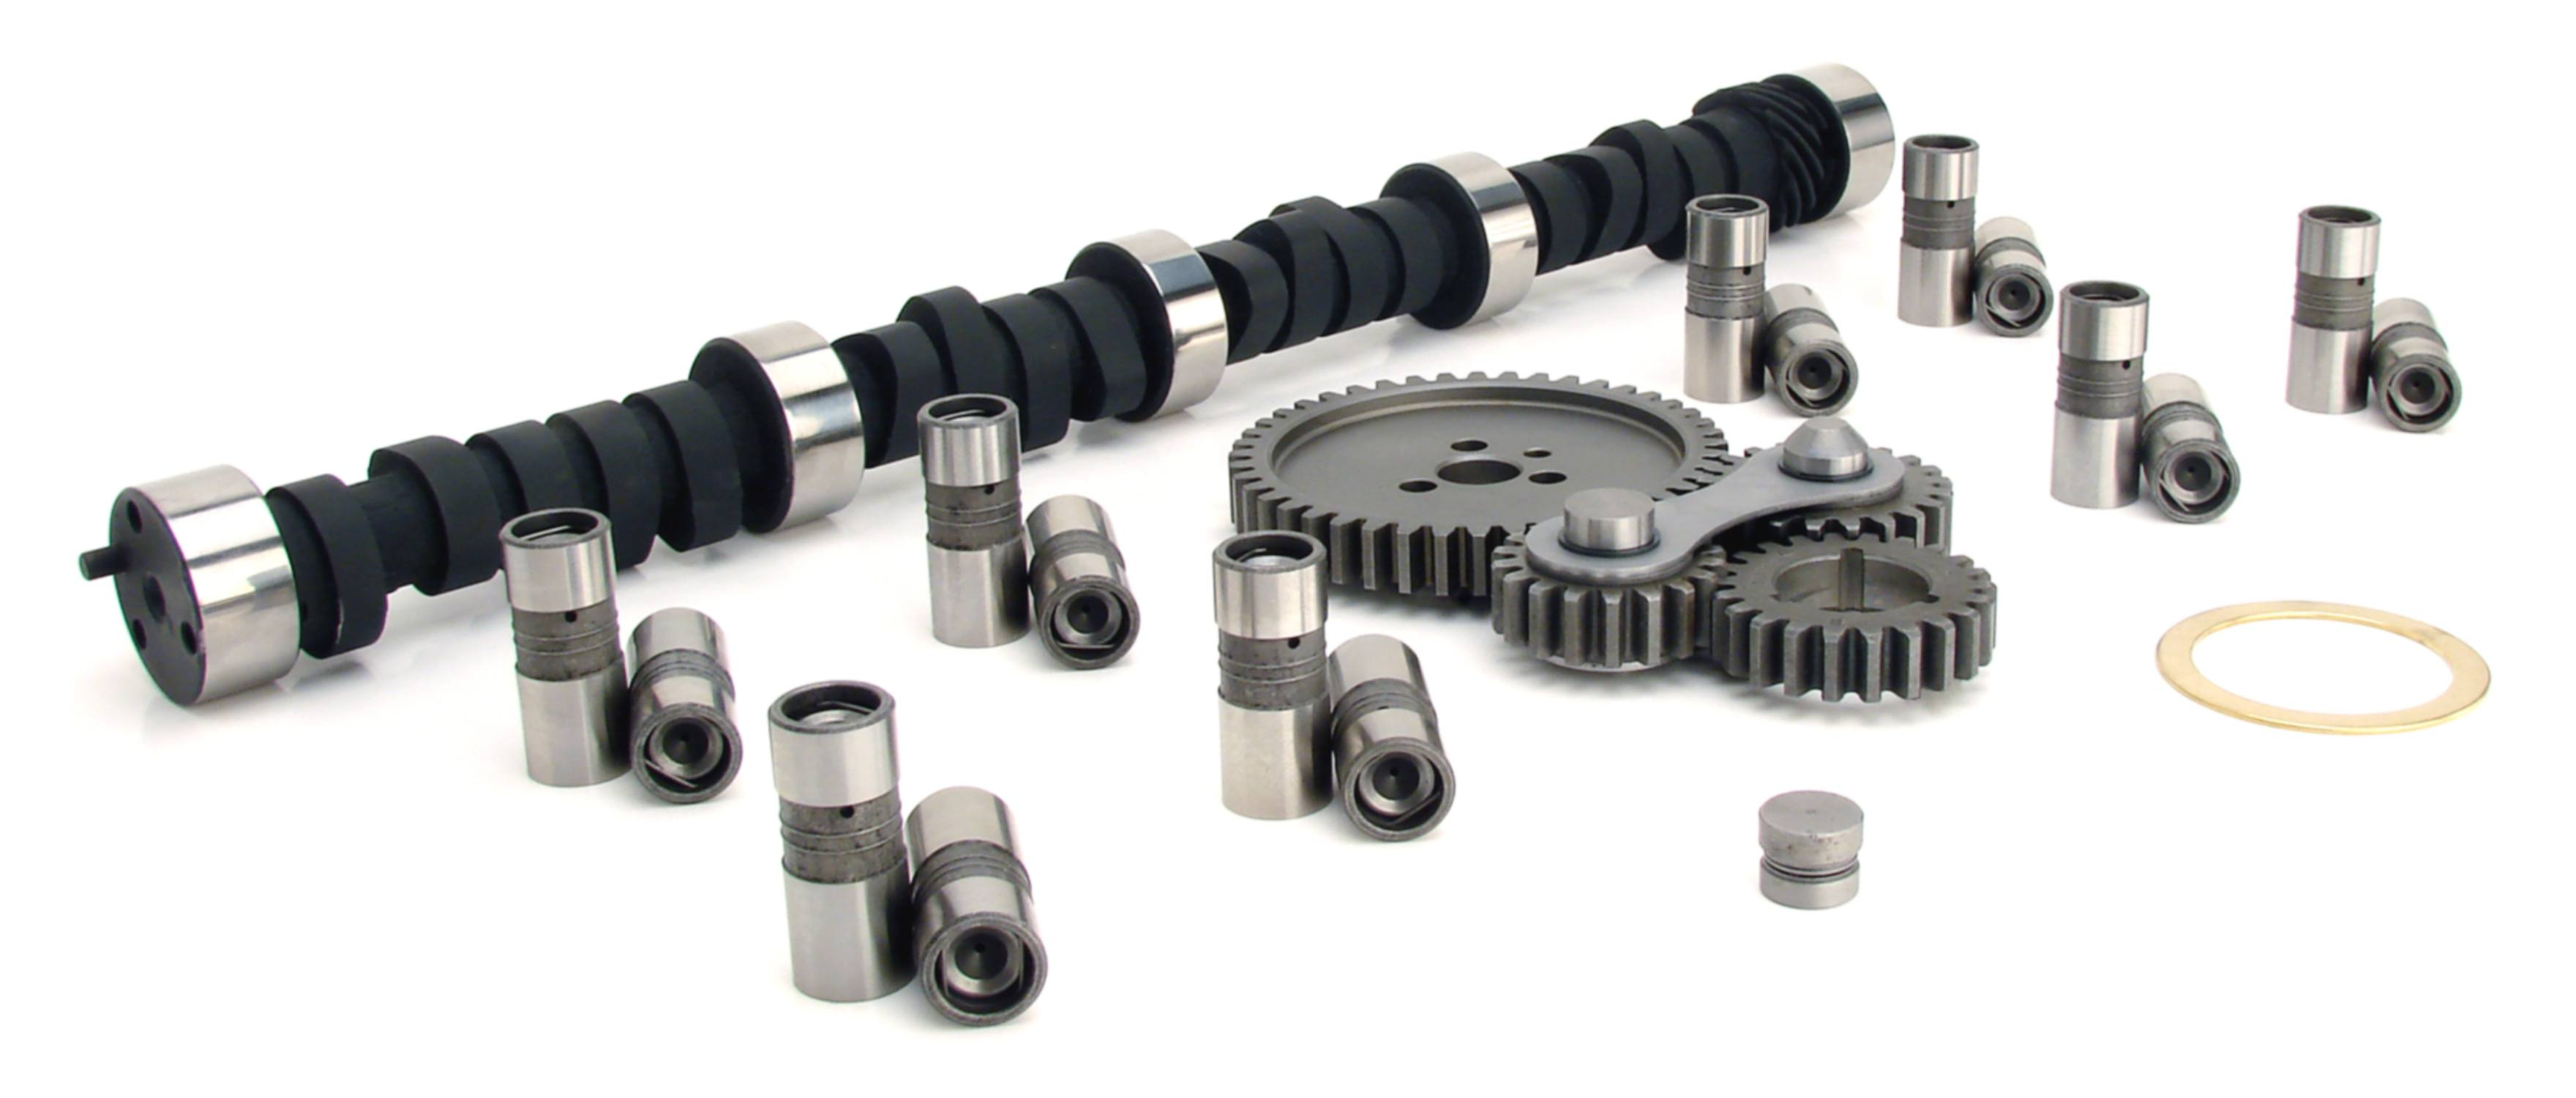 Comp Cams Gk11 601 4 Mutha Thumper Camshaft Small Kit